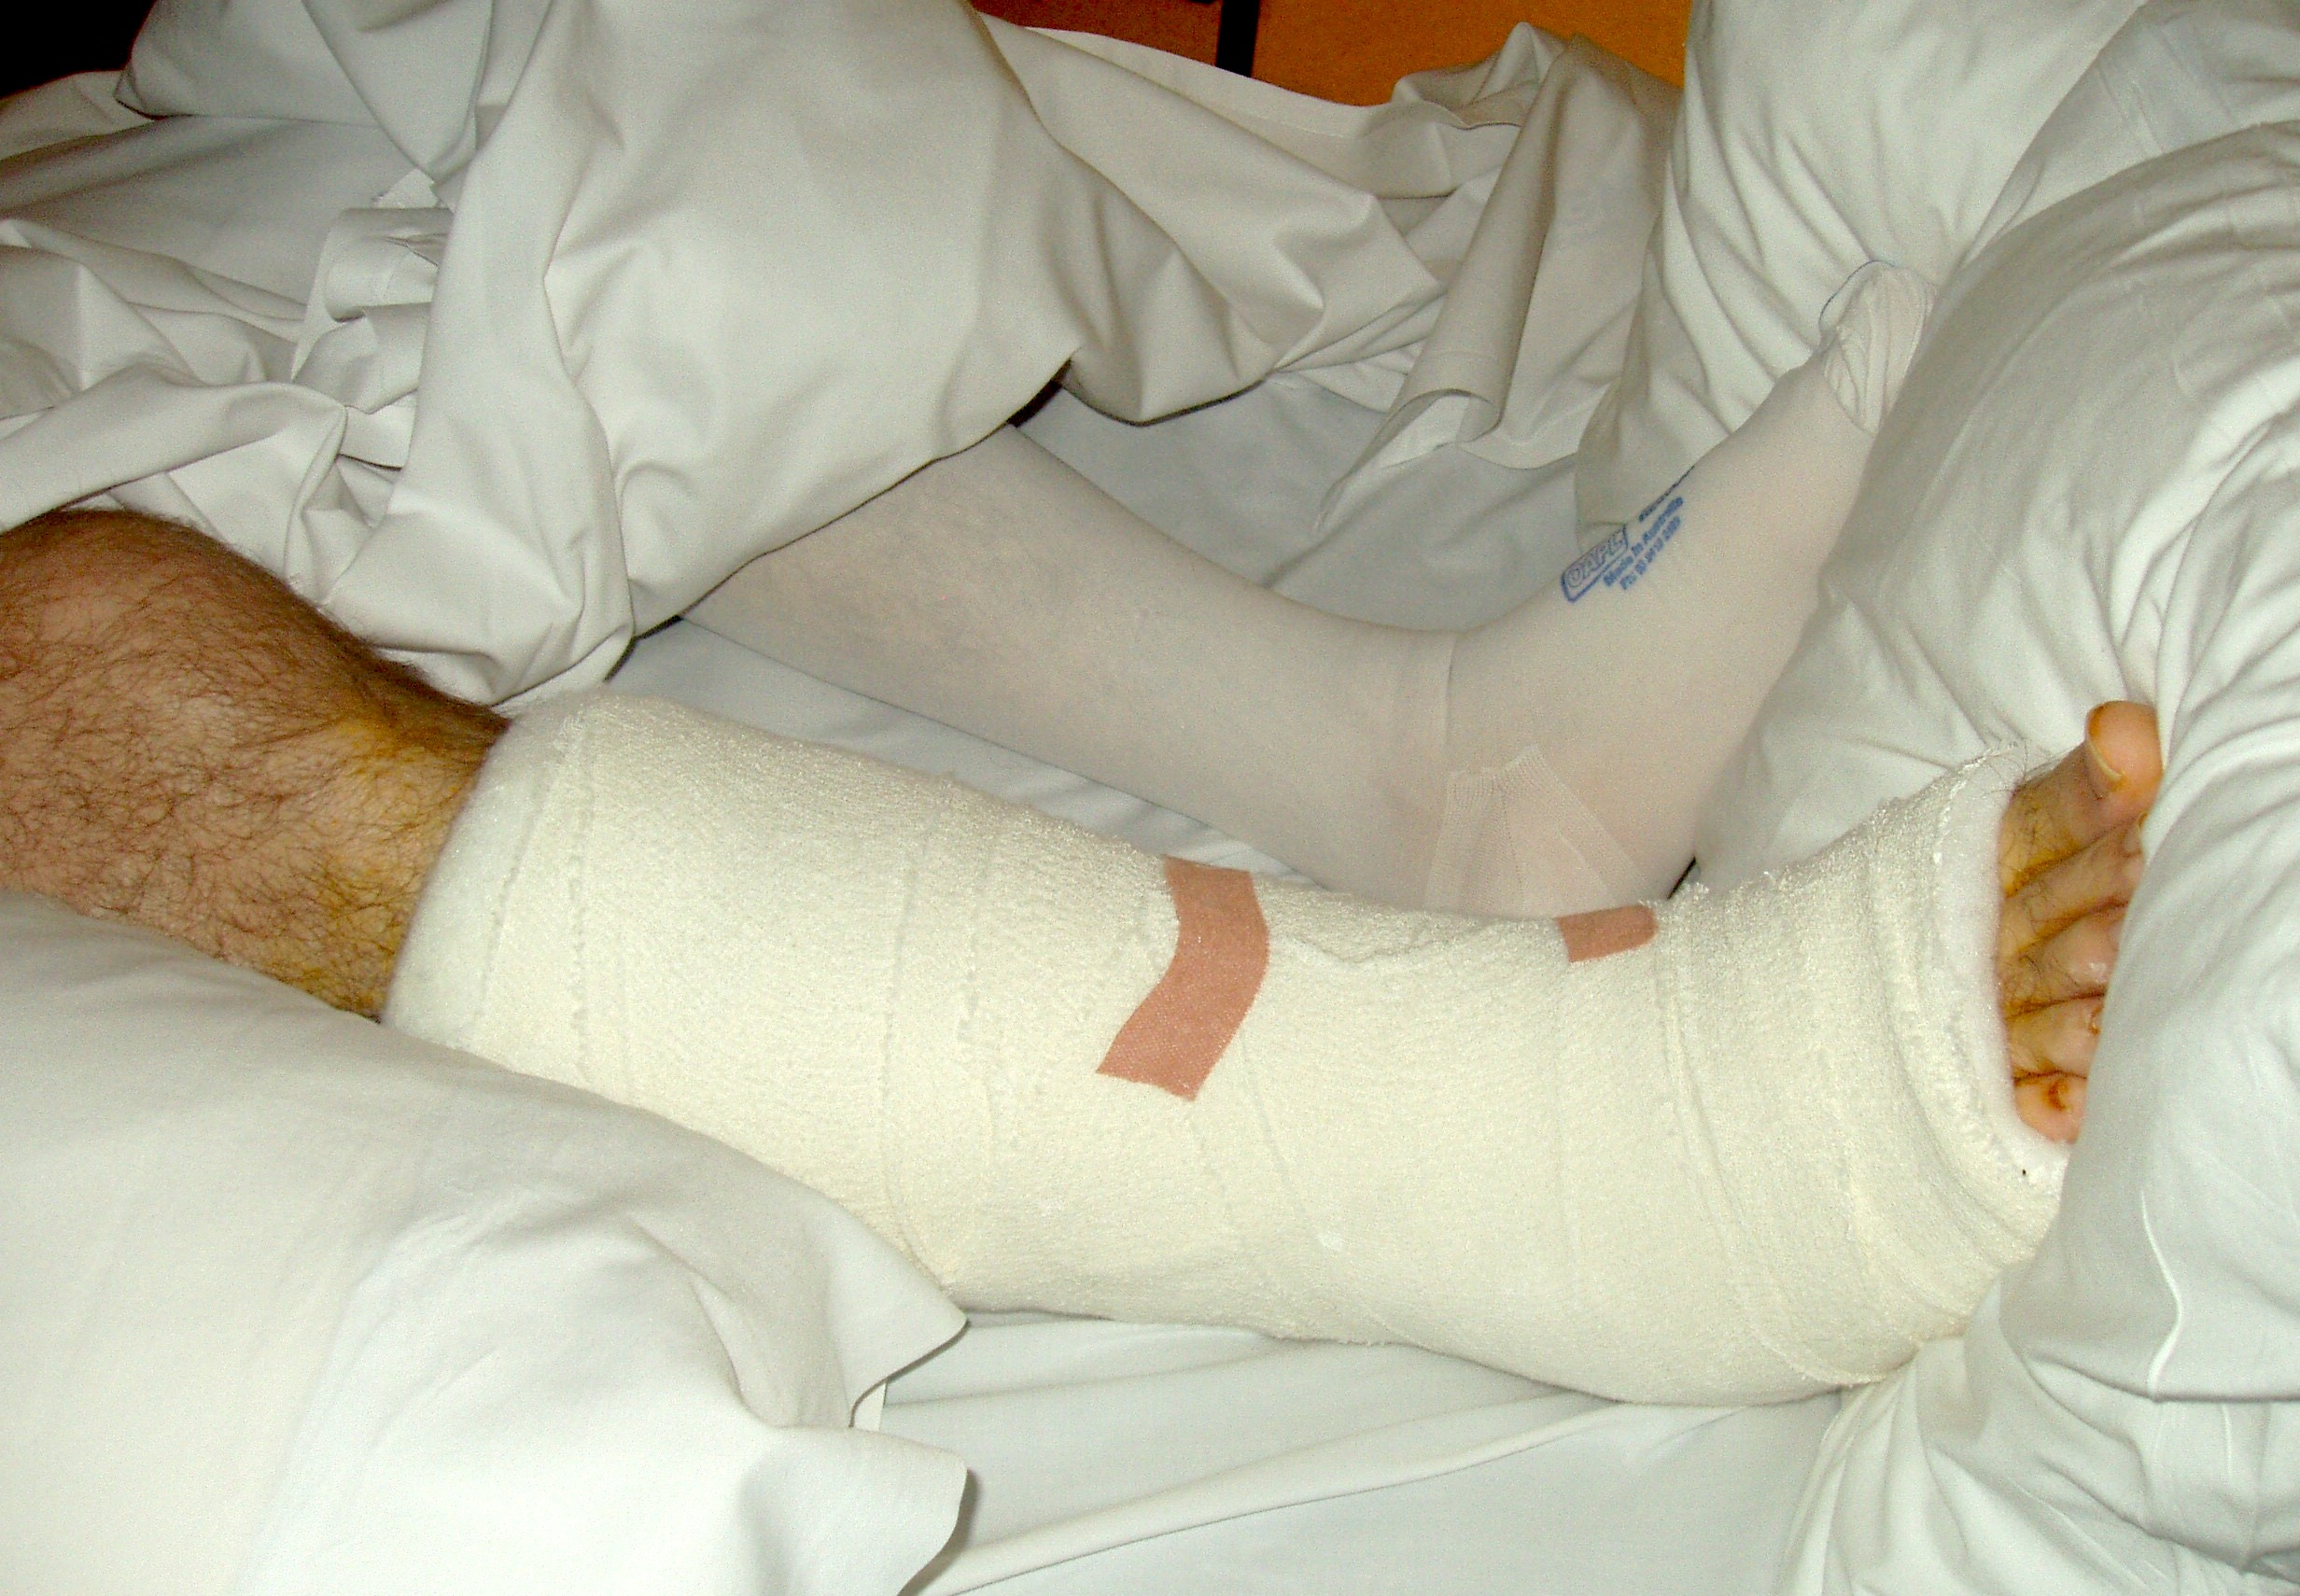 john's broken leg and ankle in bed